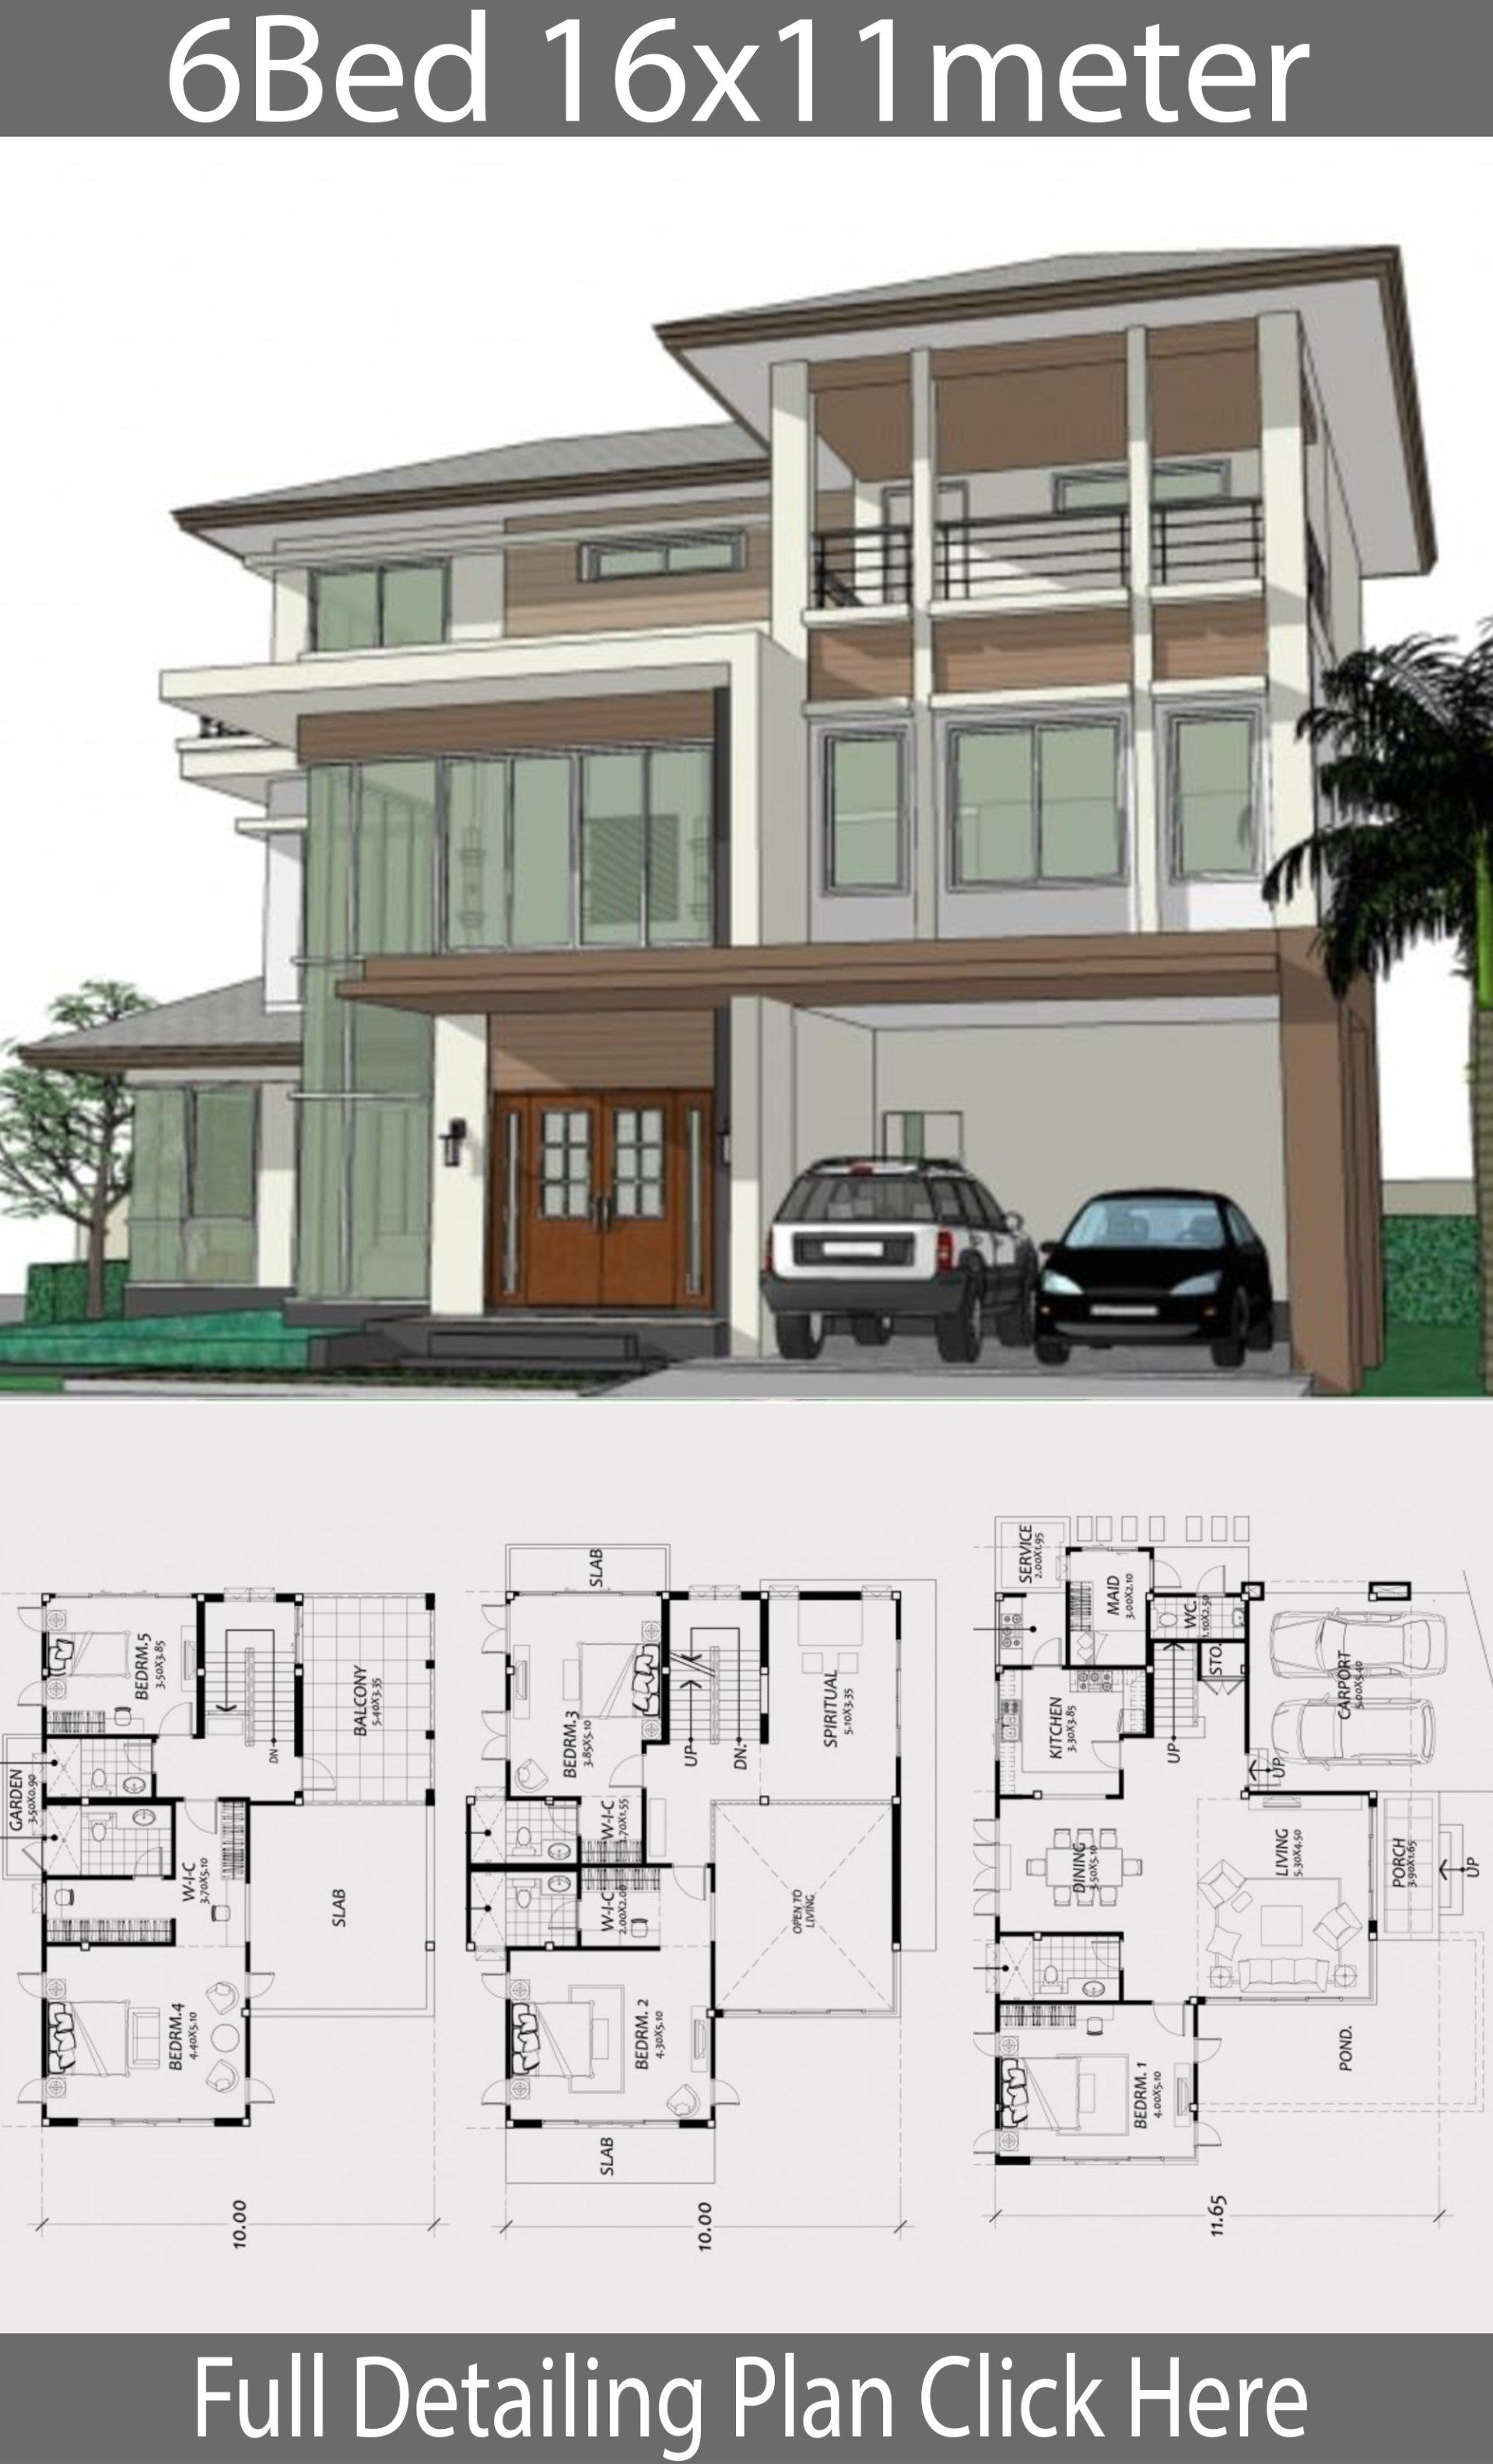 Home Design Plan 16x11m With 6 Bedrooms Home Ideas Modern Contemporary House Plans House Floor Design House Layout Plans